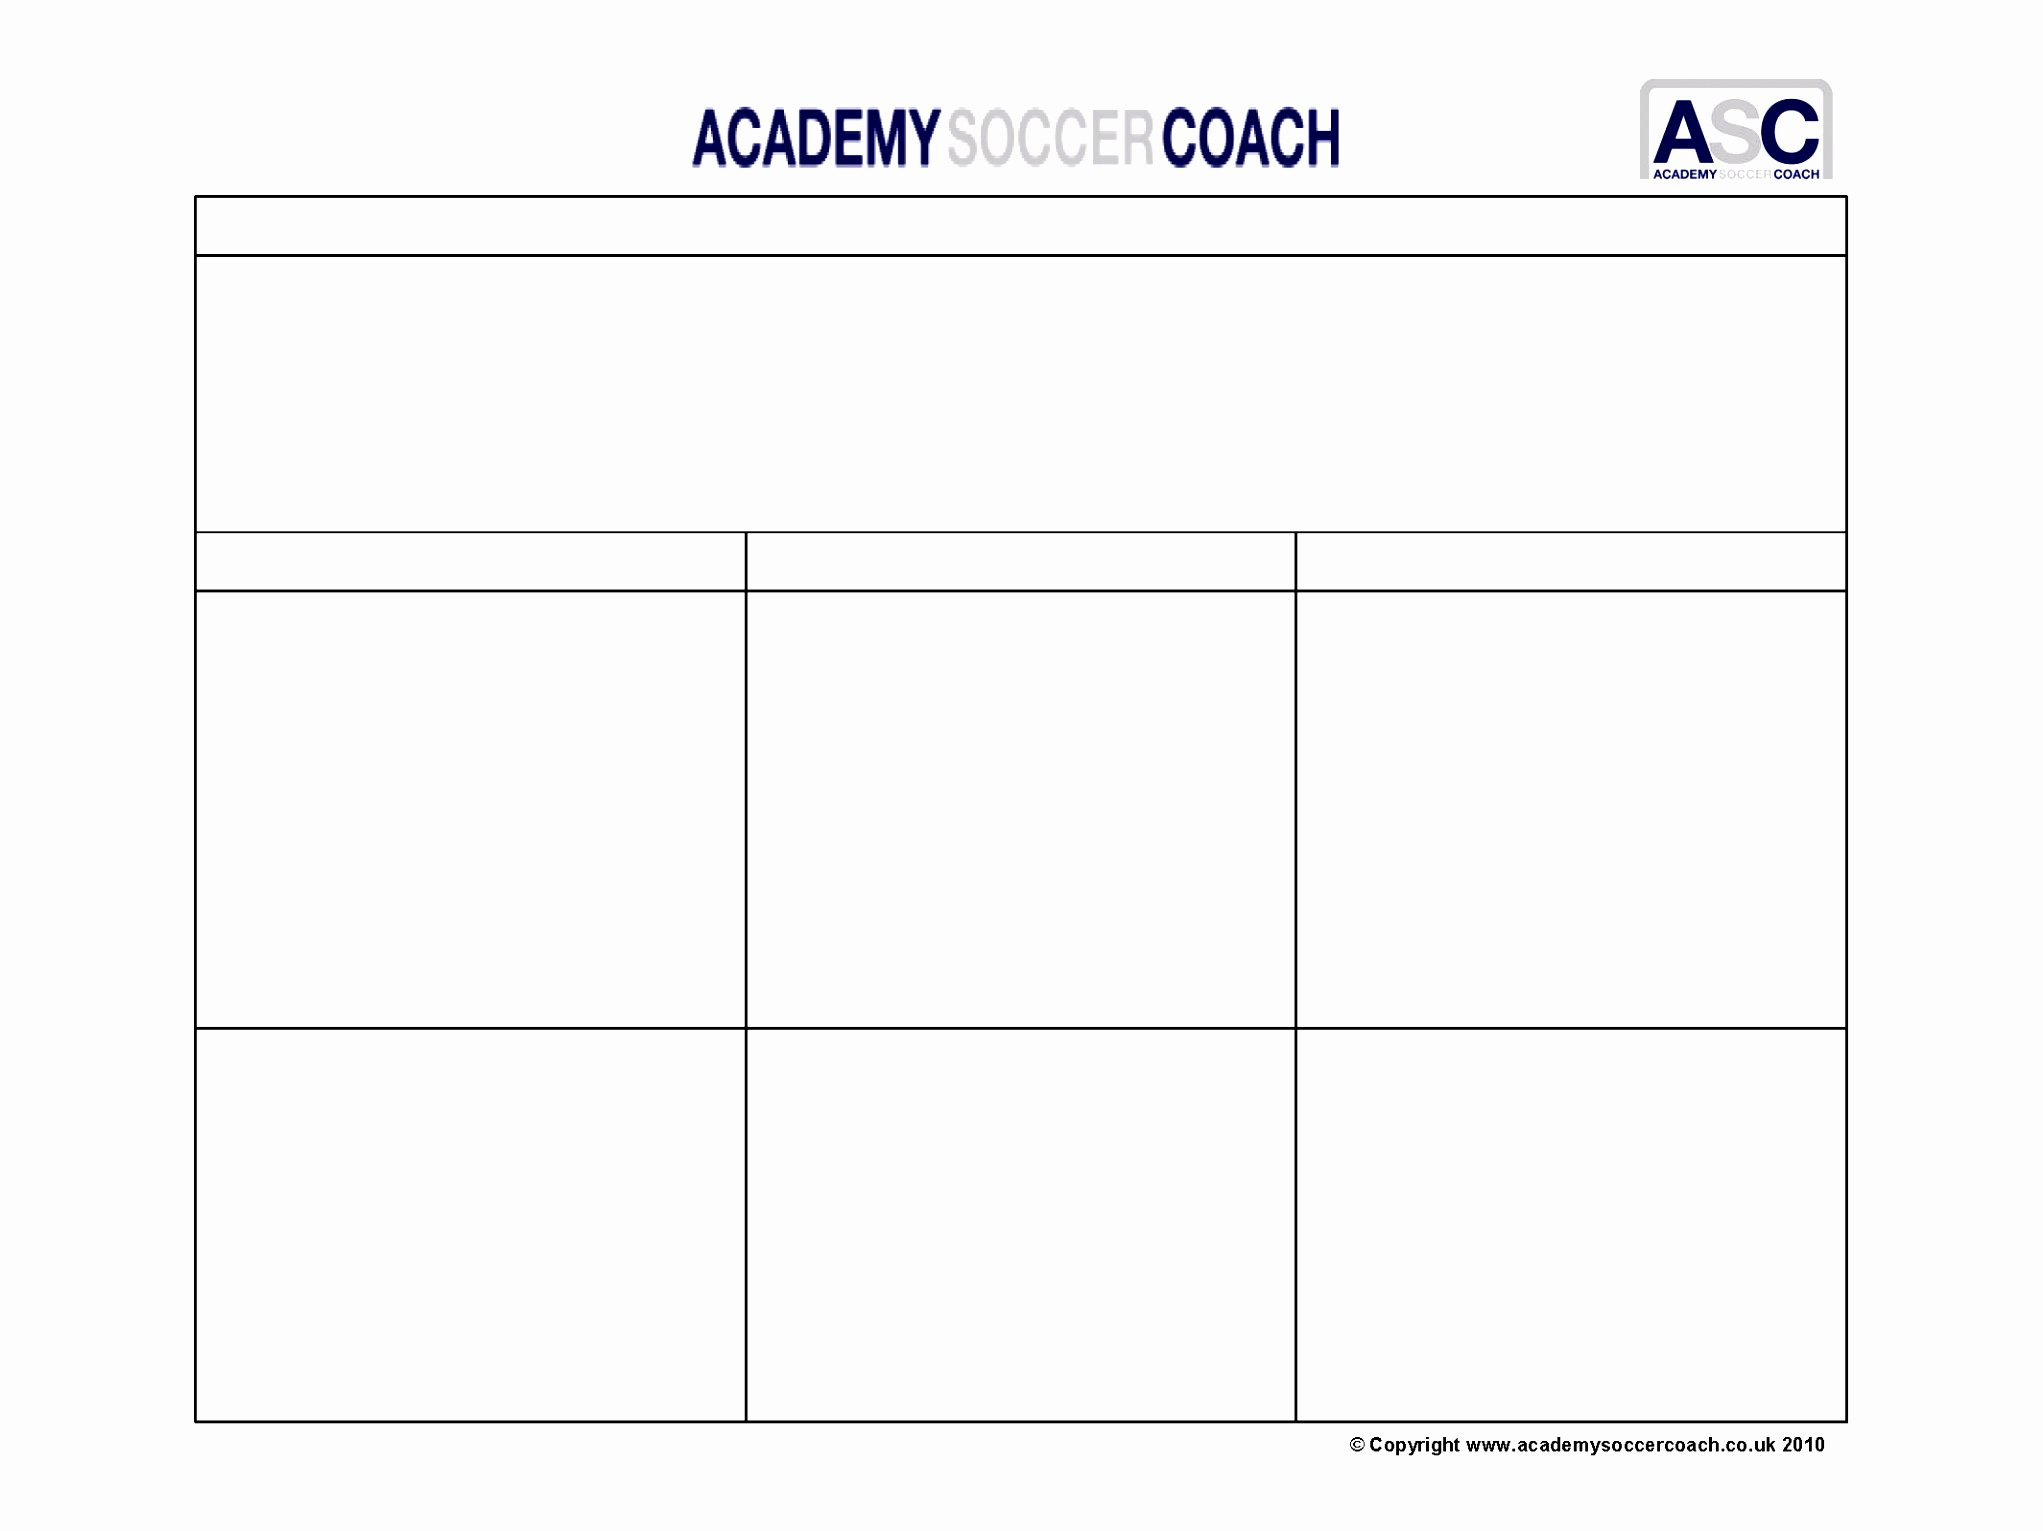 Football Practice Plan Template Excel Lovely 12 Youth Football Practice Plans Templates byooy